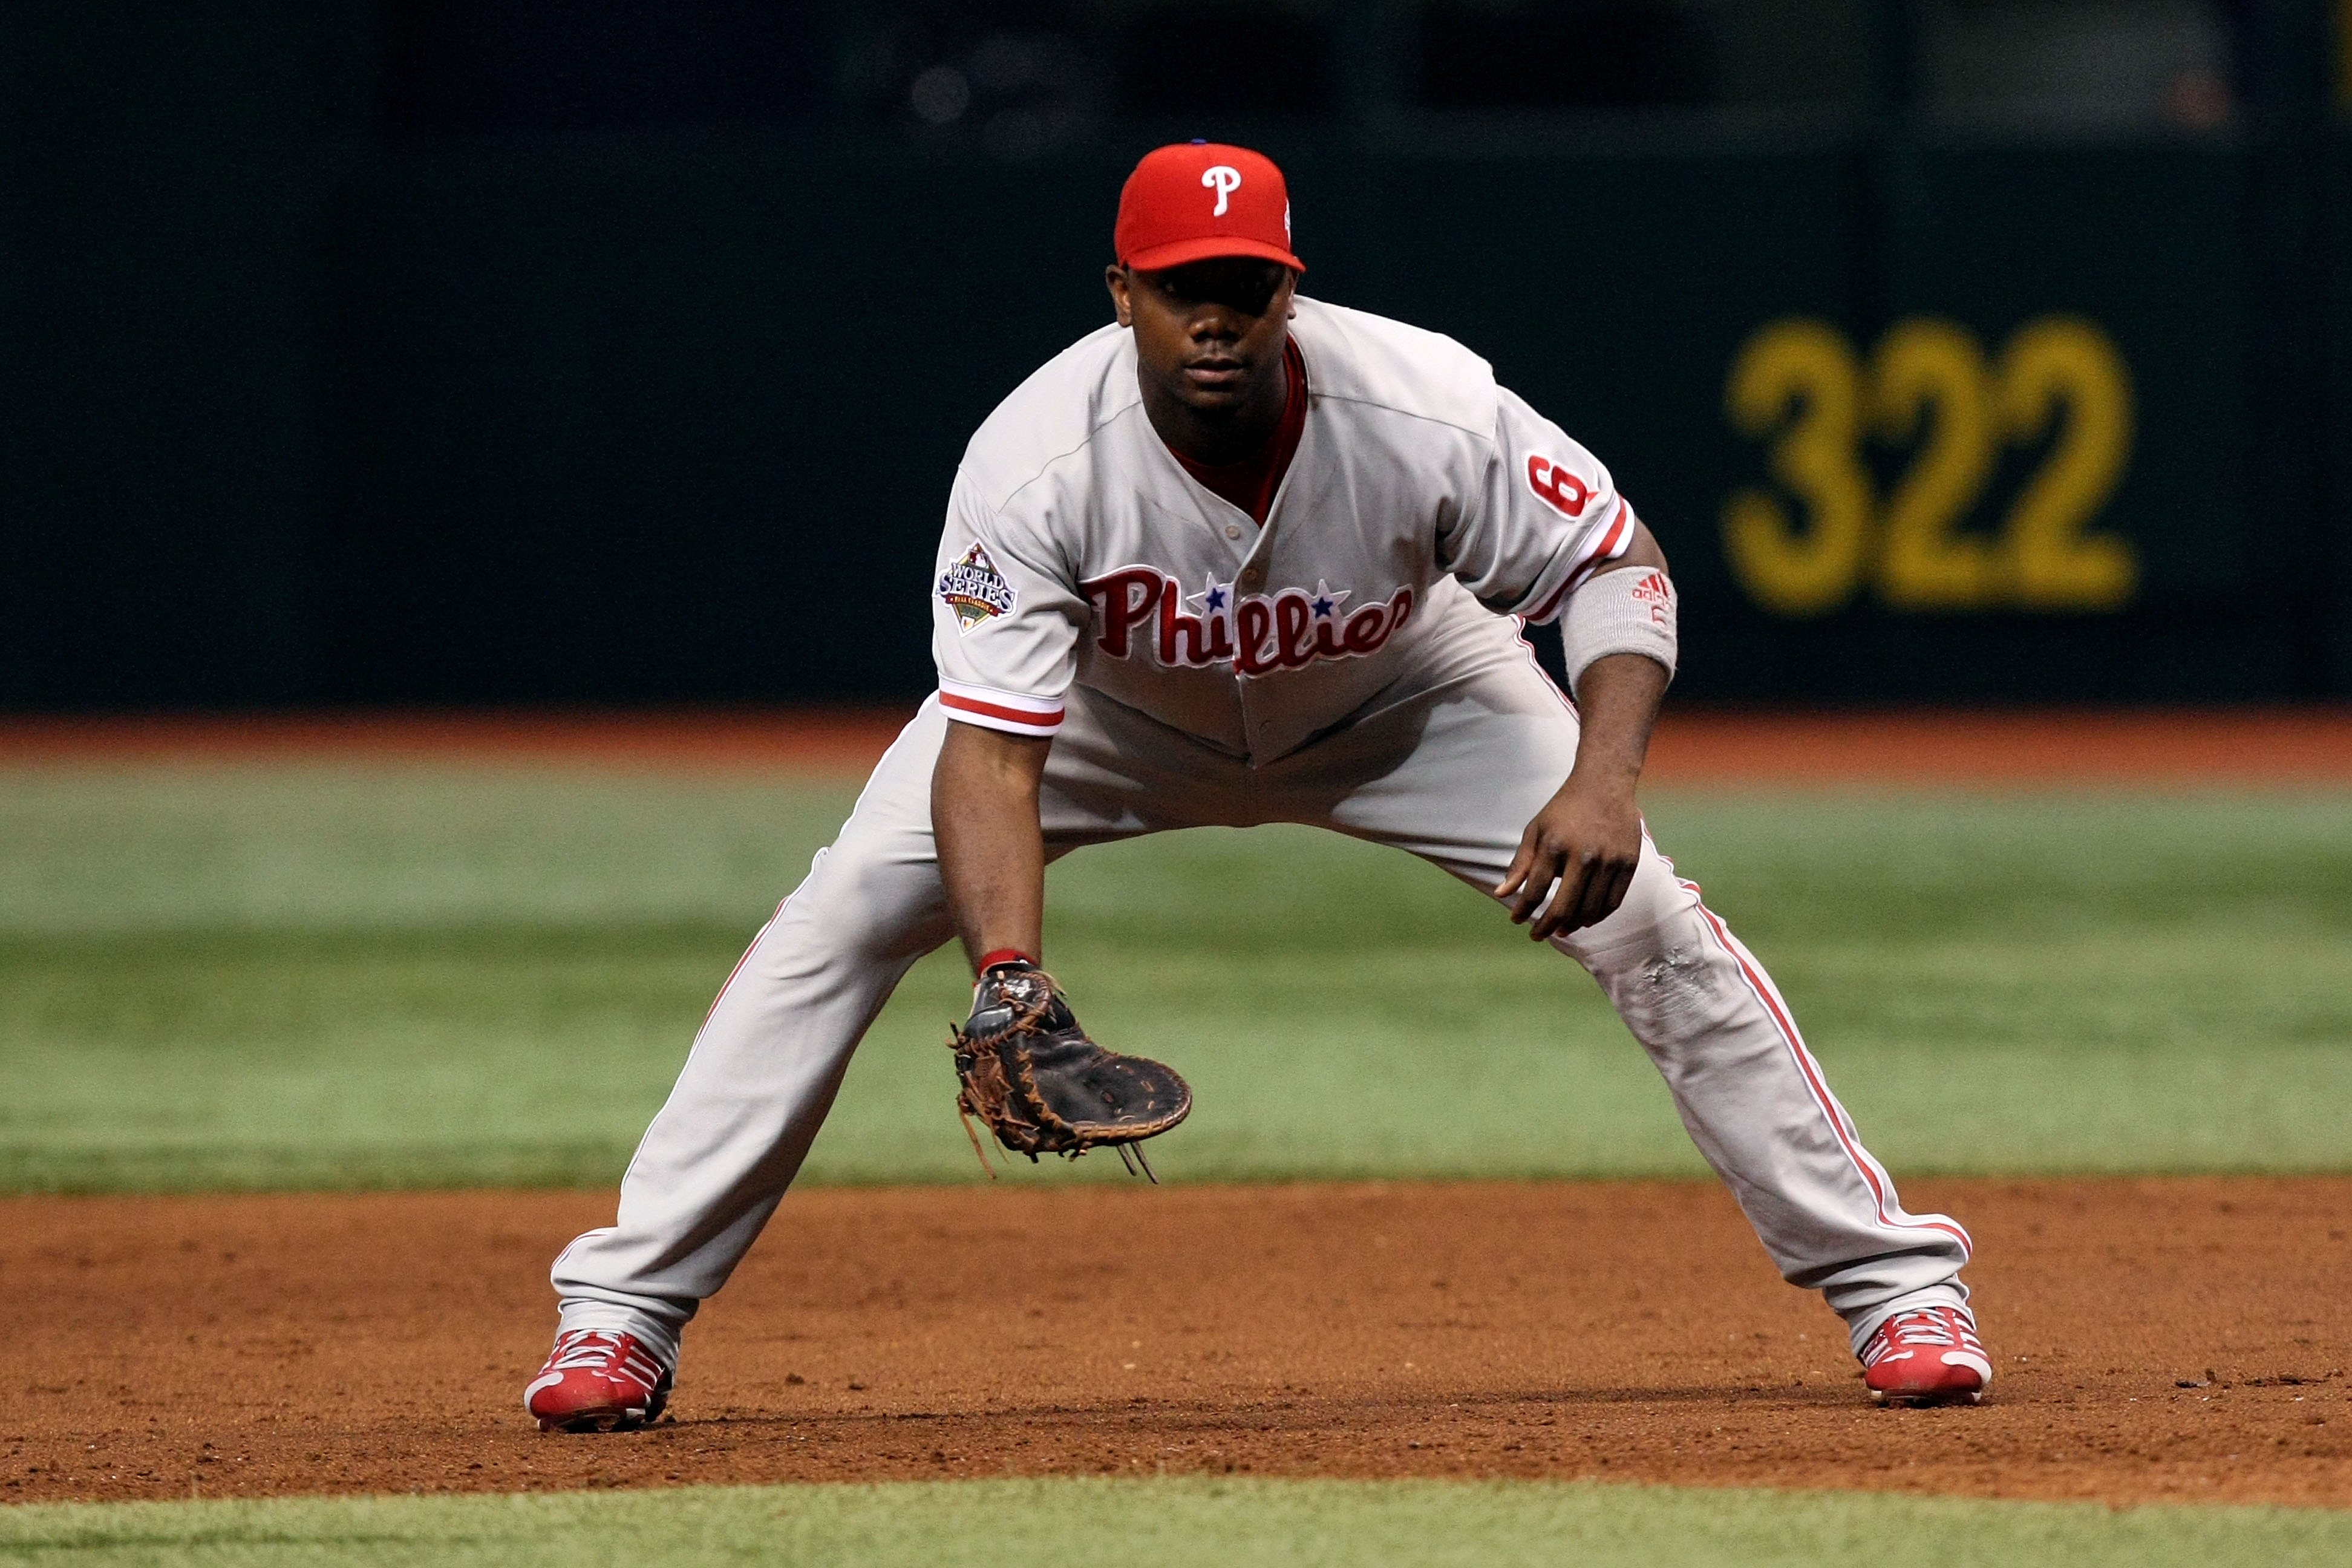 ST PETERSBURG, FL - OCTOBER 22:  Ryan Howard #6 of the Philadelphia Phillies readies himself on defense against the Tampa Bay Rays during game one of the 2008 MLB World Series on October 22, 2008 at Tropicana Field in St. Petersburg, Florida.  (Photo by D